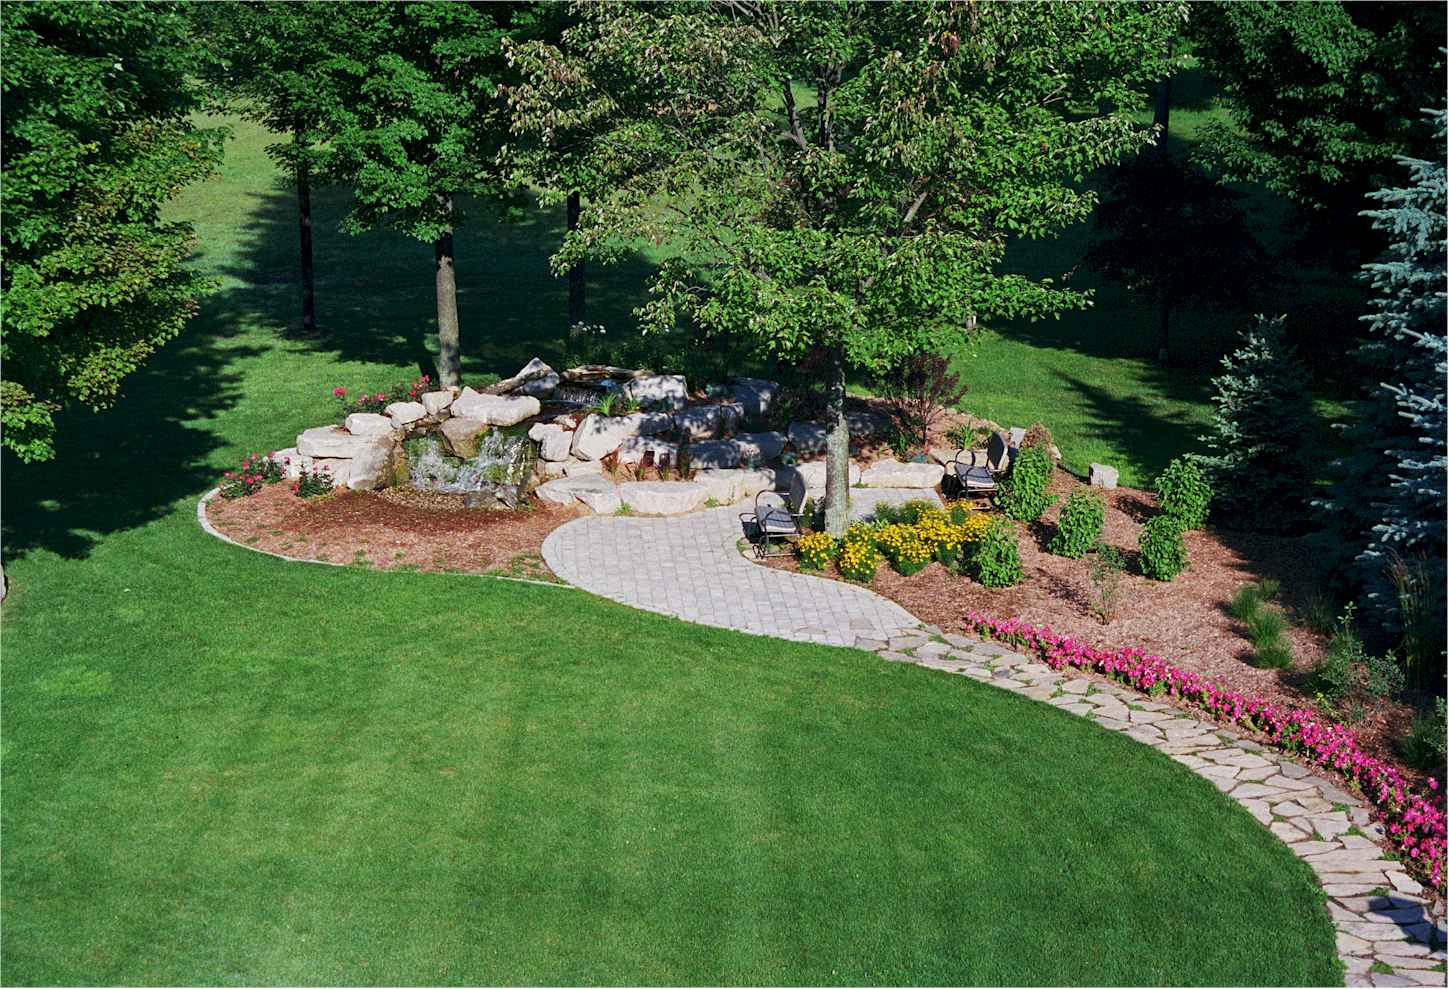 Wallpaper backgrounds landscaping for Landscape garden design ideas